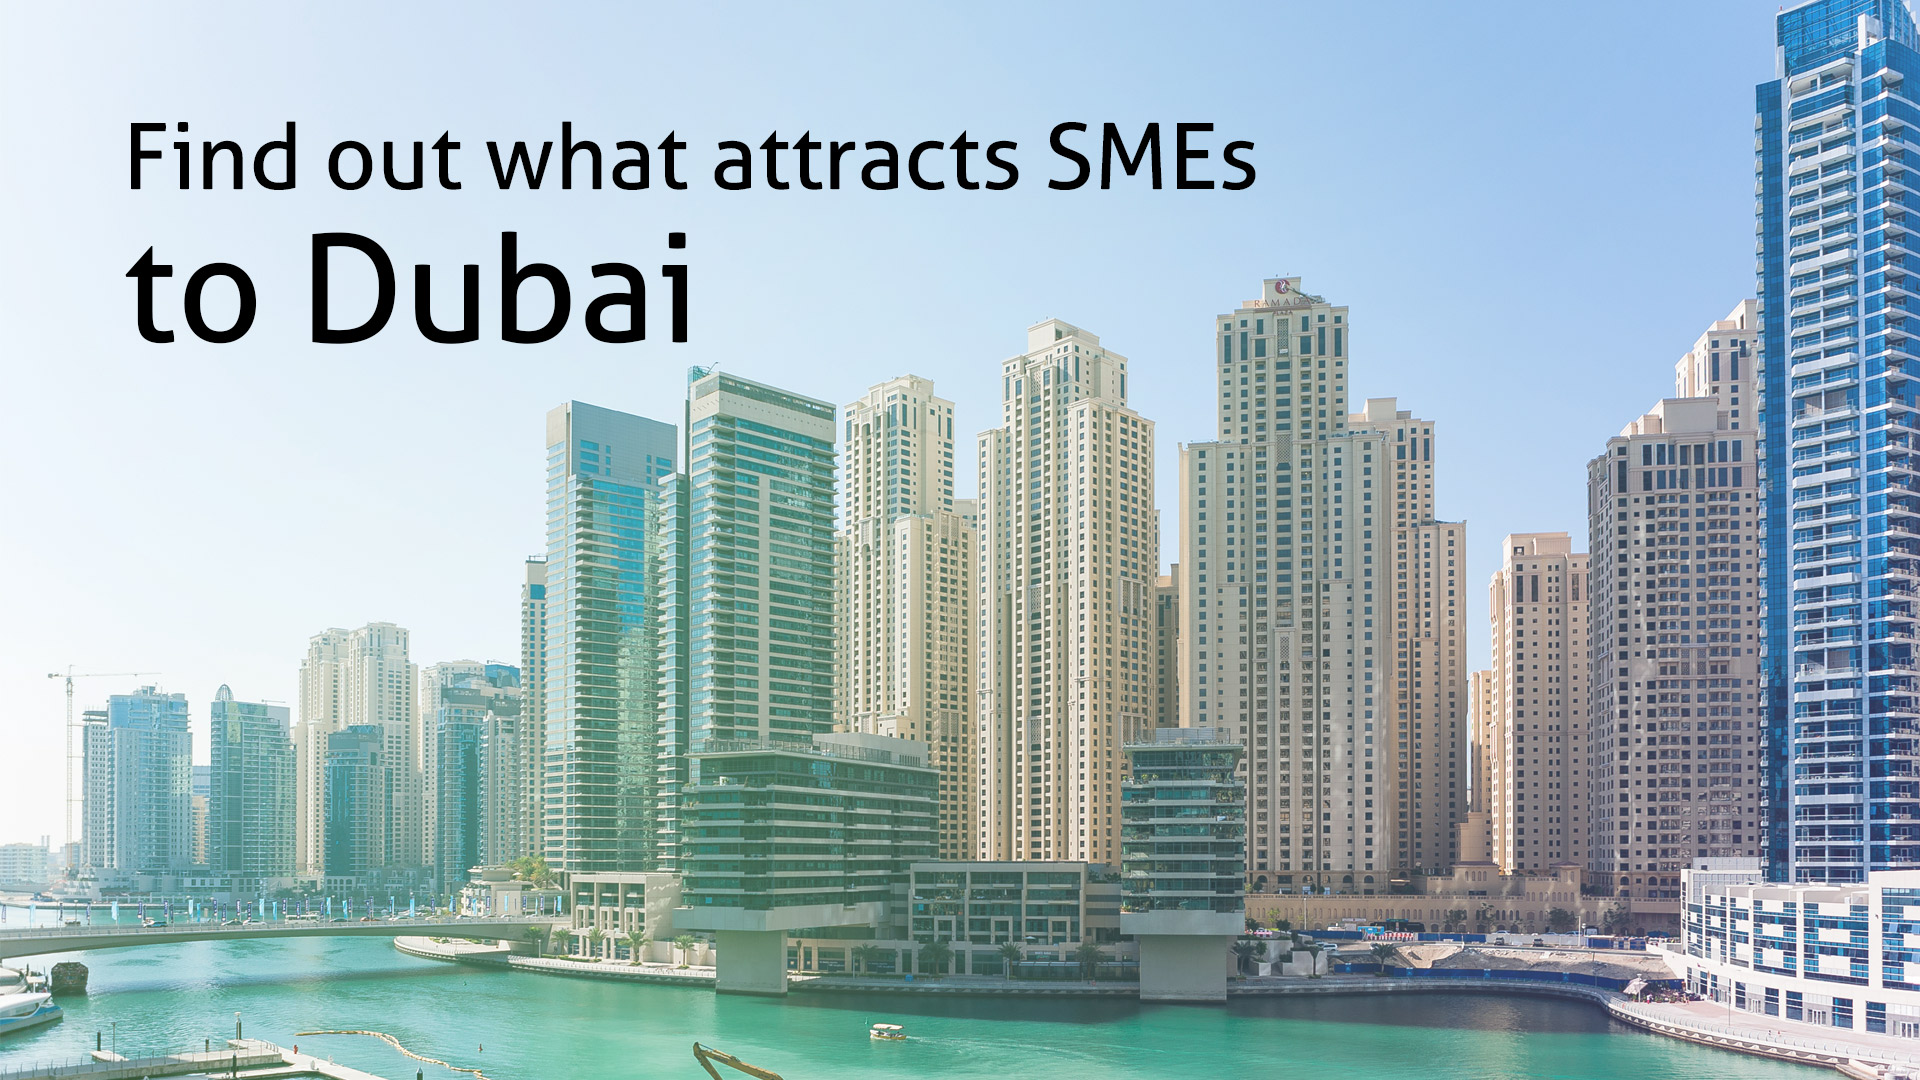 Find out what attracts SMEs in Dubai